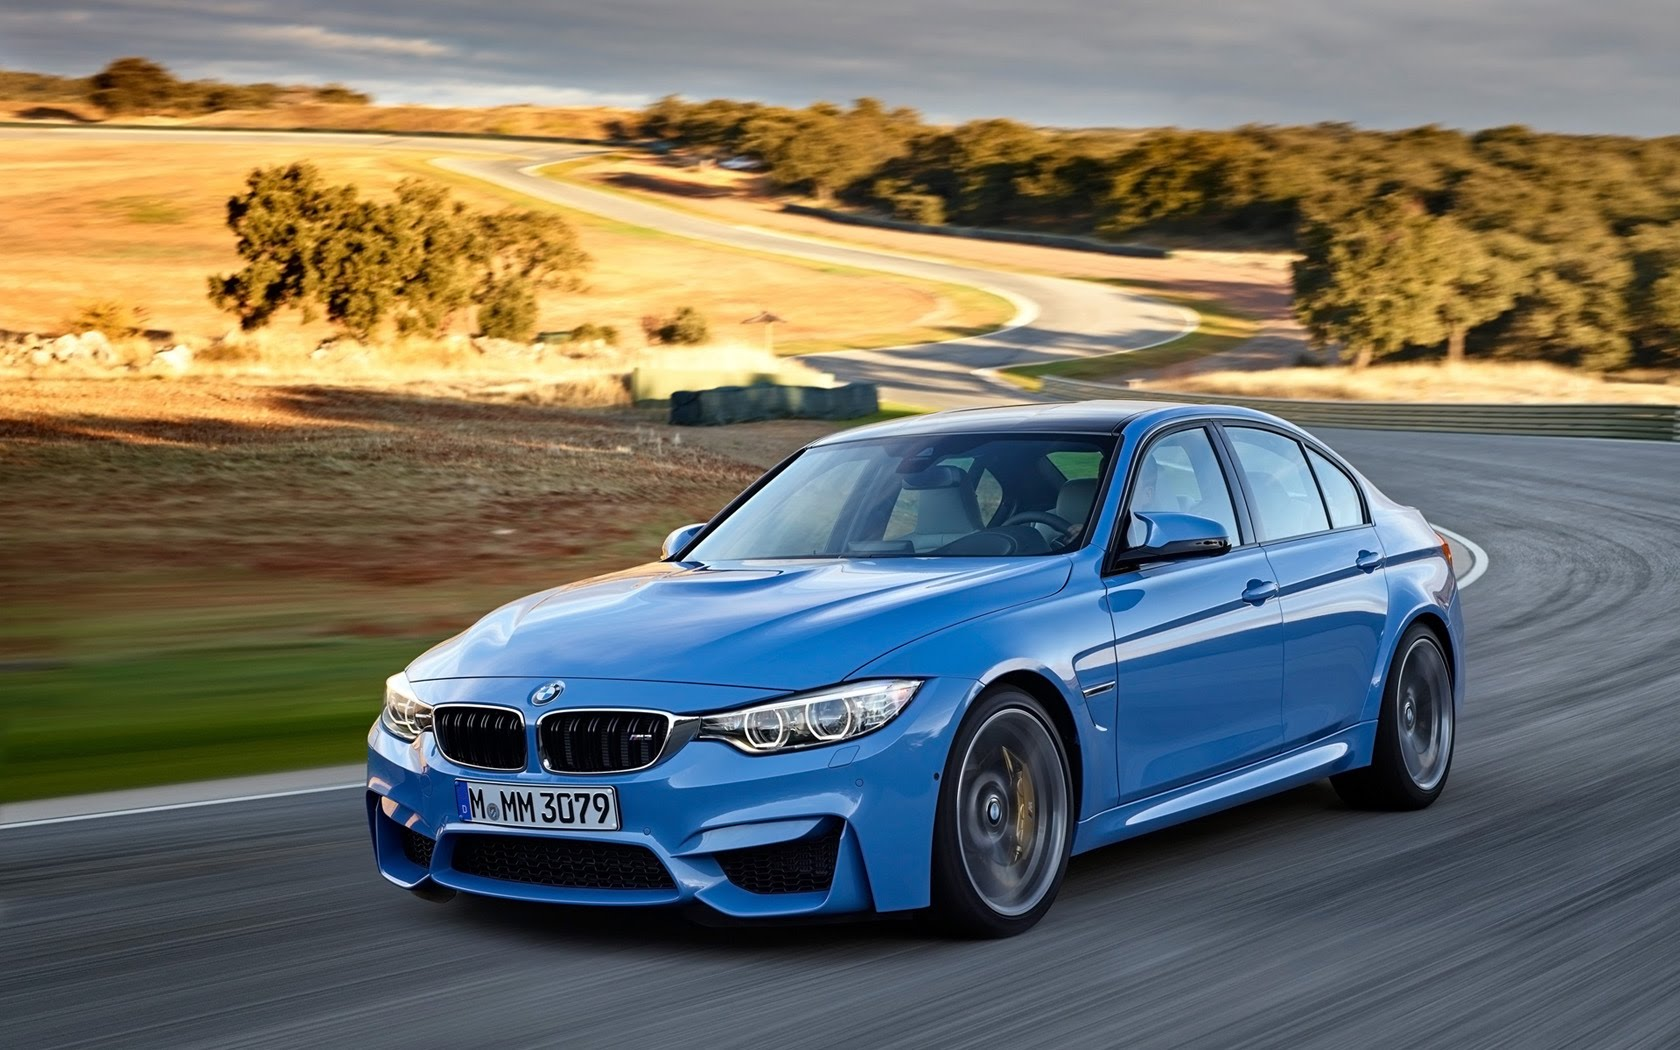 The 2016 BMW M3 in Yas Marina blue.